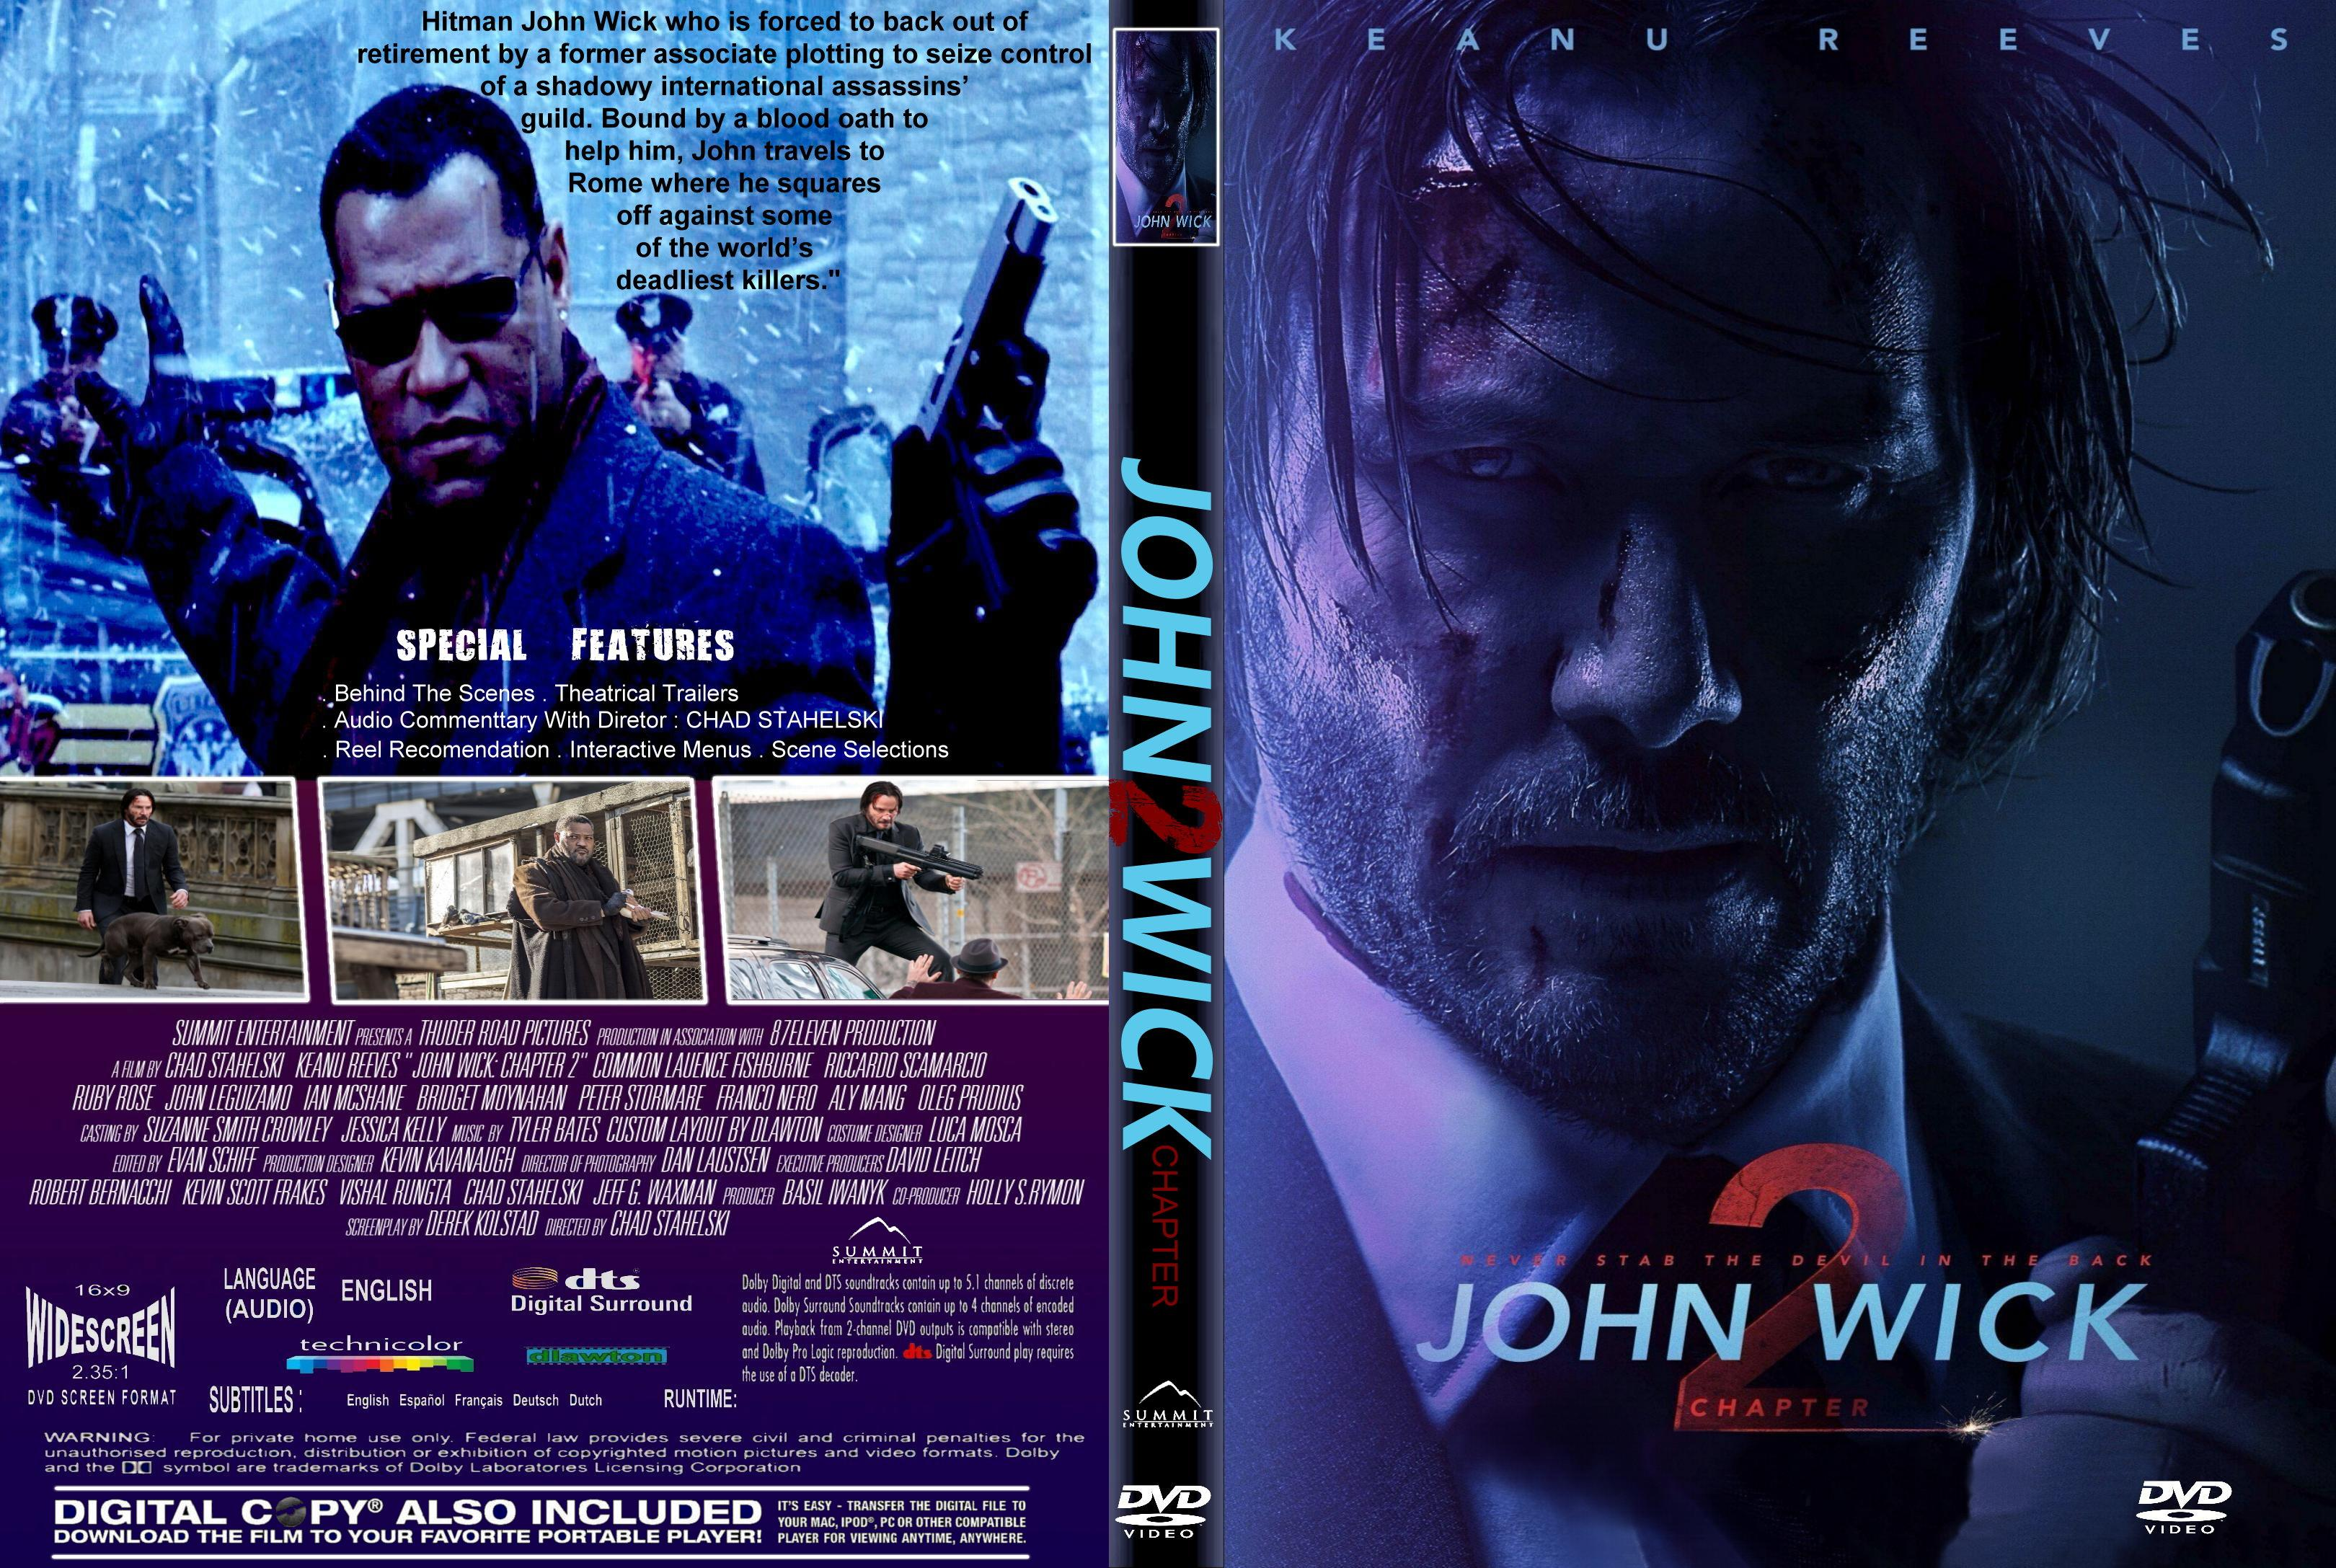 John Wick Chapter 2 2017 Front Dvd Covers Cover Century Over 500 000 Album Art Covers For Free